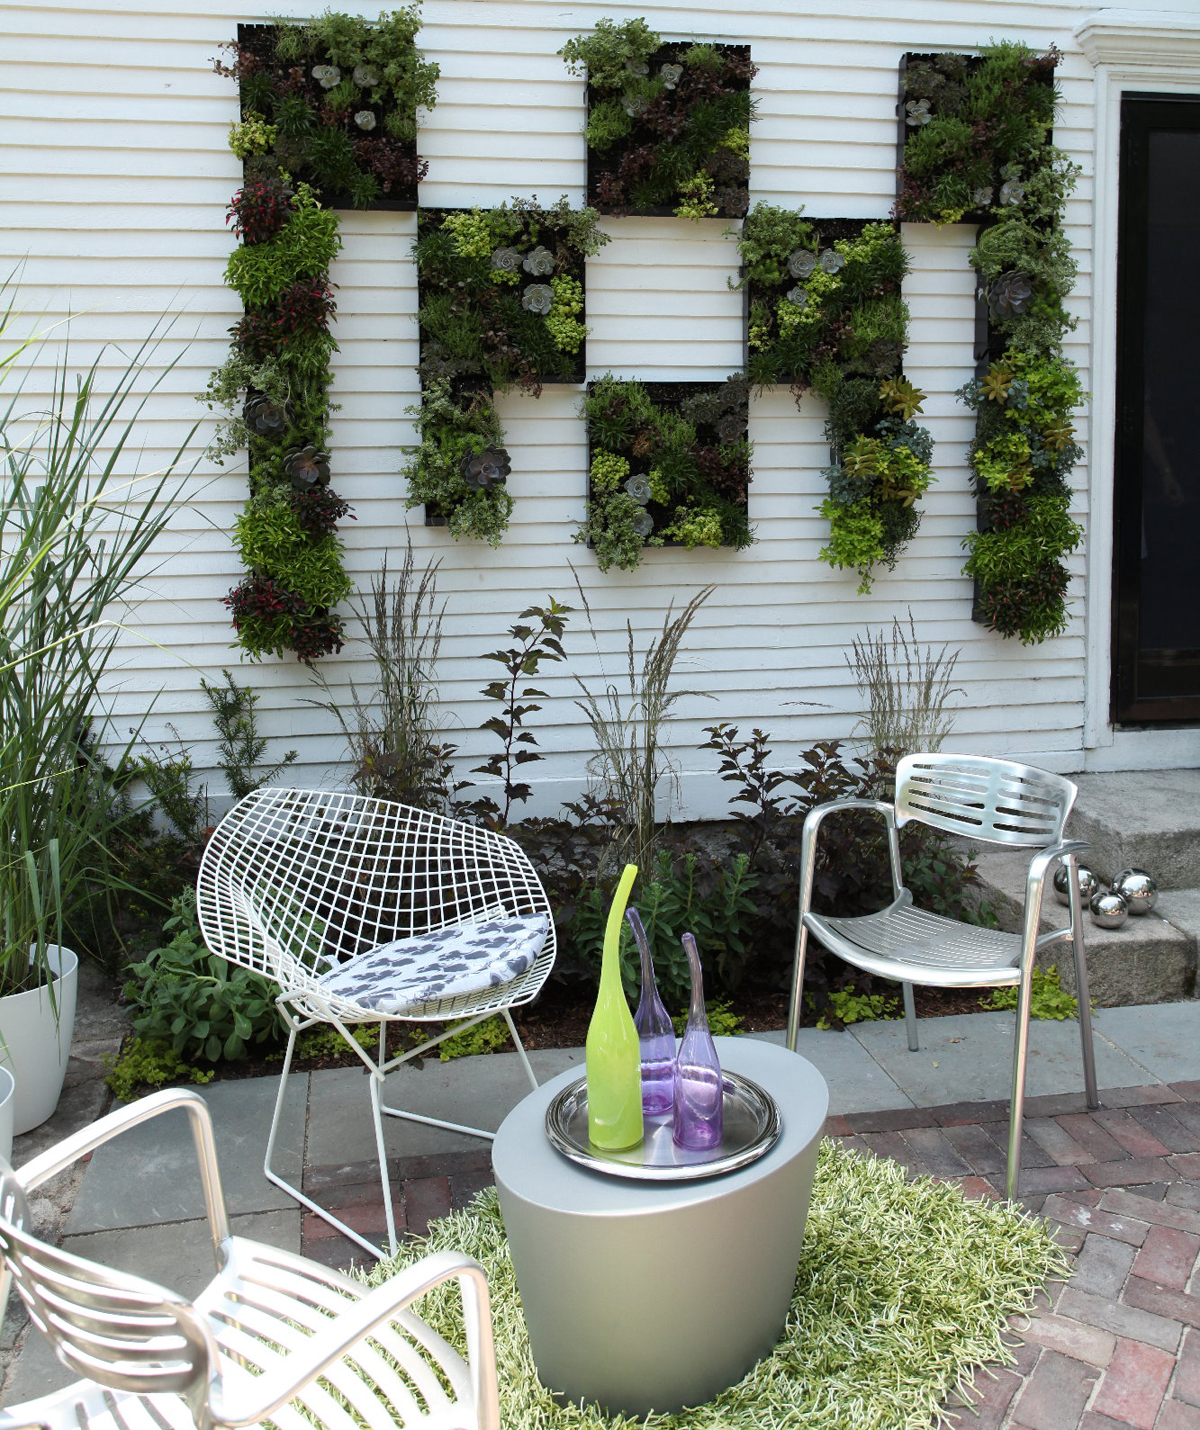 Vertical gardens steal the show | Boston.com on plant wall design, vertical wall lighting, tree garden design, vertical edible gardens, vertical wall water feature, small front garden design, vertical garden plans, vertical wall gardening, vertical vegetable garden kits, vertical vegetable garden design, vertical garden ideas, vertical kitchen garden, vertical lighting design, vertical garden apartment, corner garden design, vertical interior design, small modern garden design, indoor vertical garden design, vertical wall construction, vertical garden planting panel,